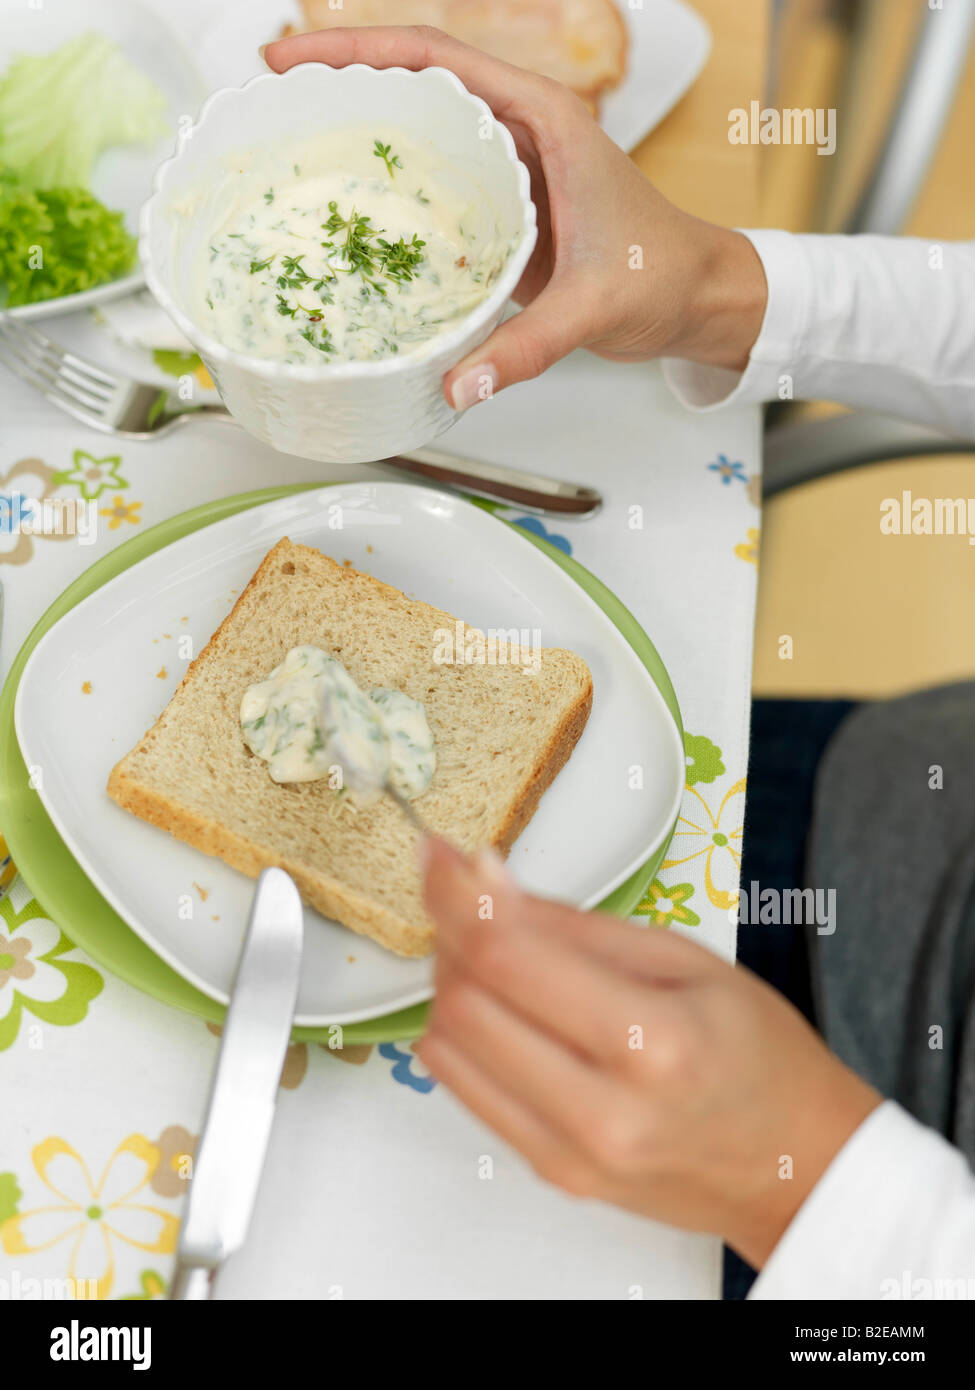 Person's hands spreading cream cheese on slice of bread - Stock Image